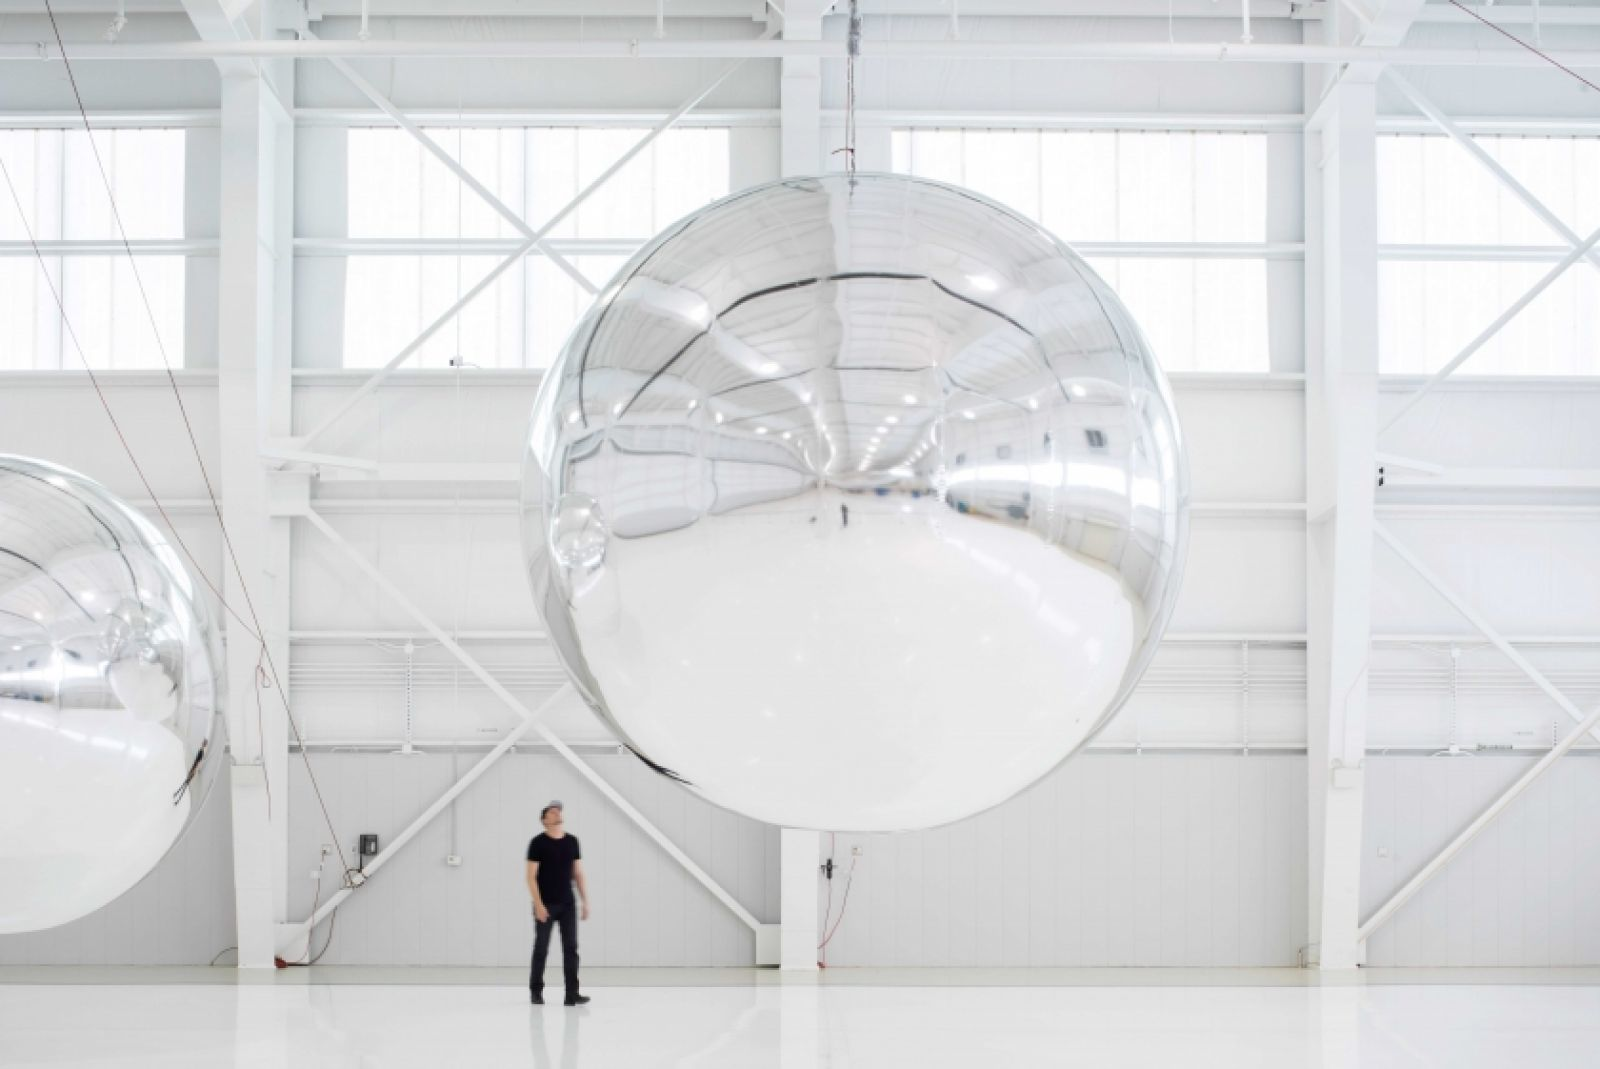 Paglen with his Prototype for a Nonfunctional Satellite (Design 4; Build 4), 2013. Photo: © Altman Siegel Gallery and Metro Pictures